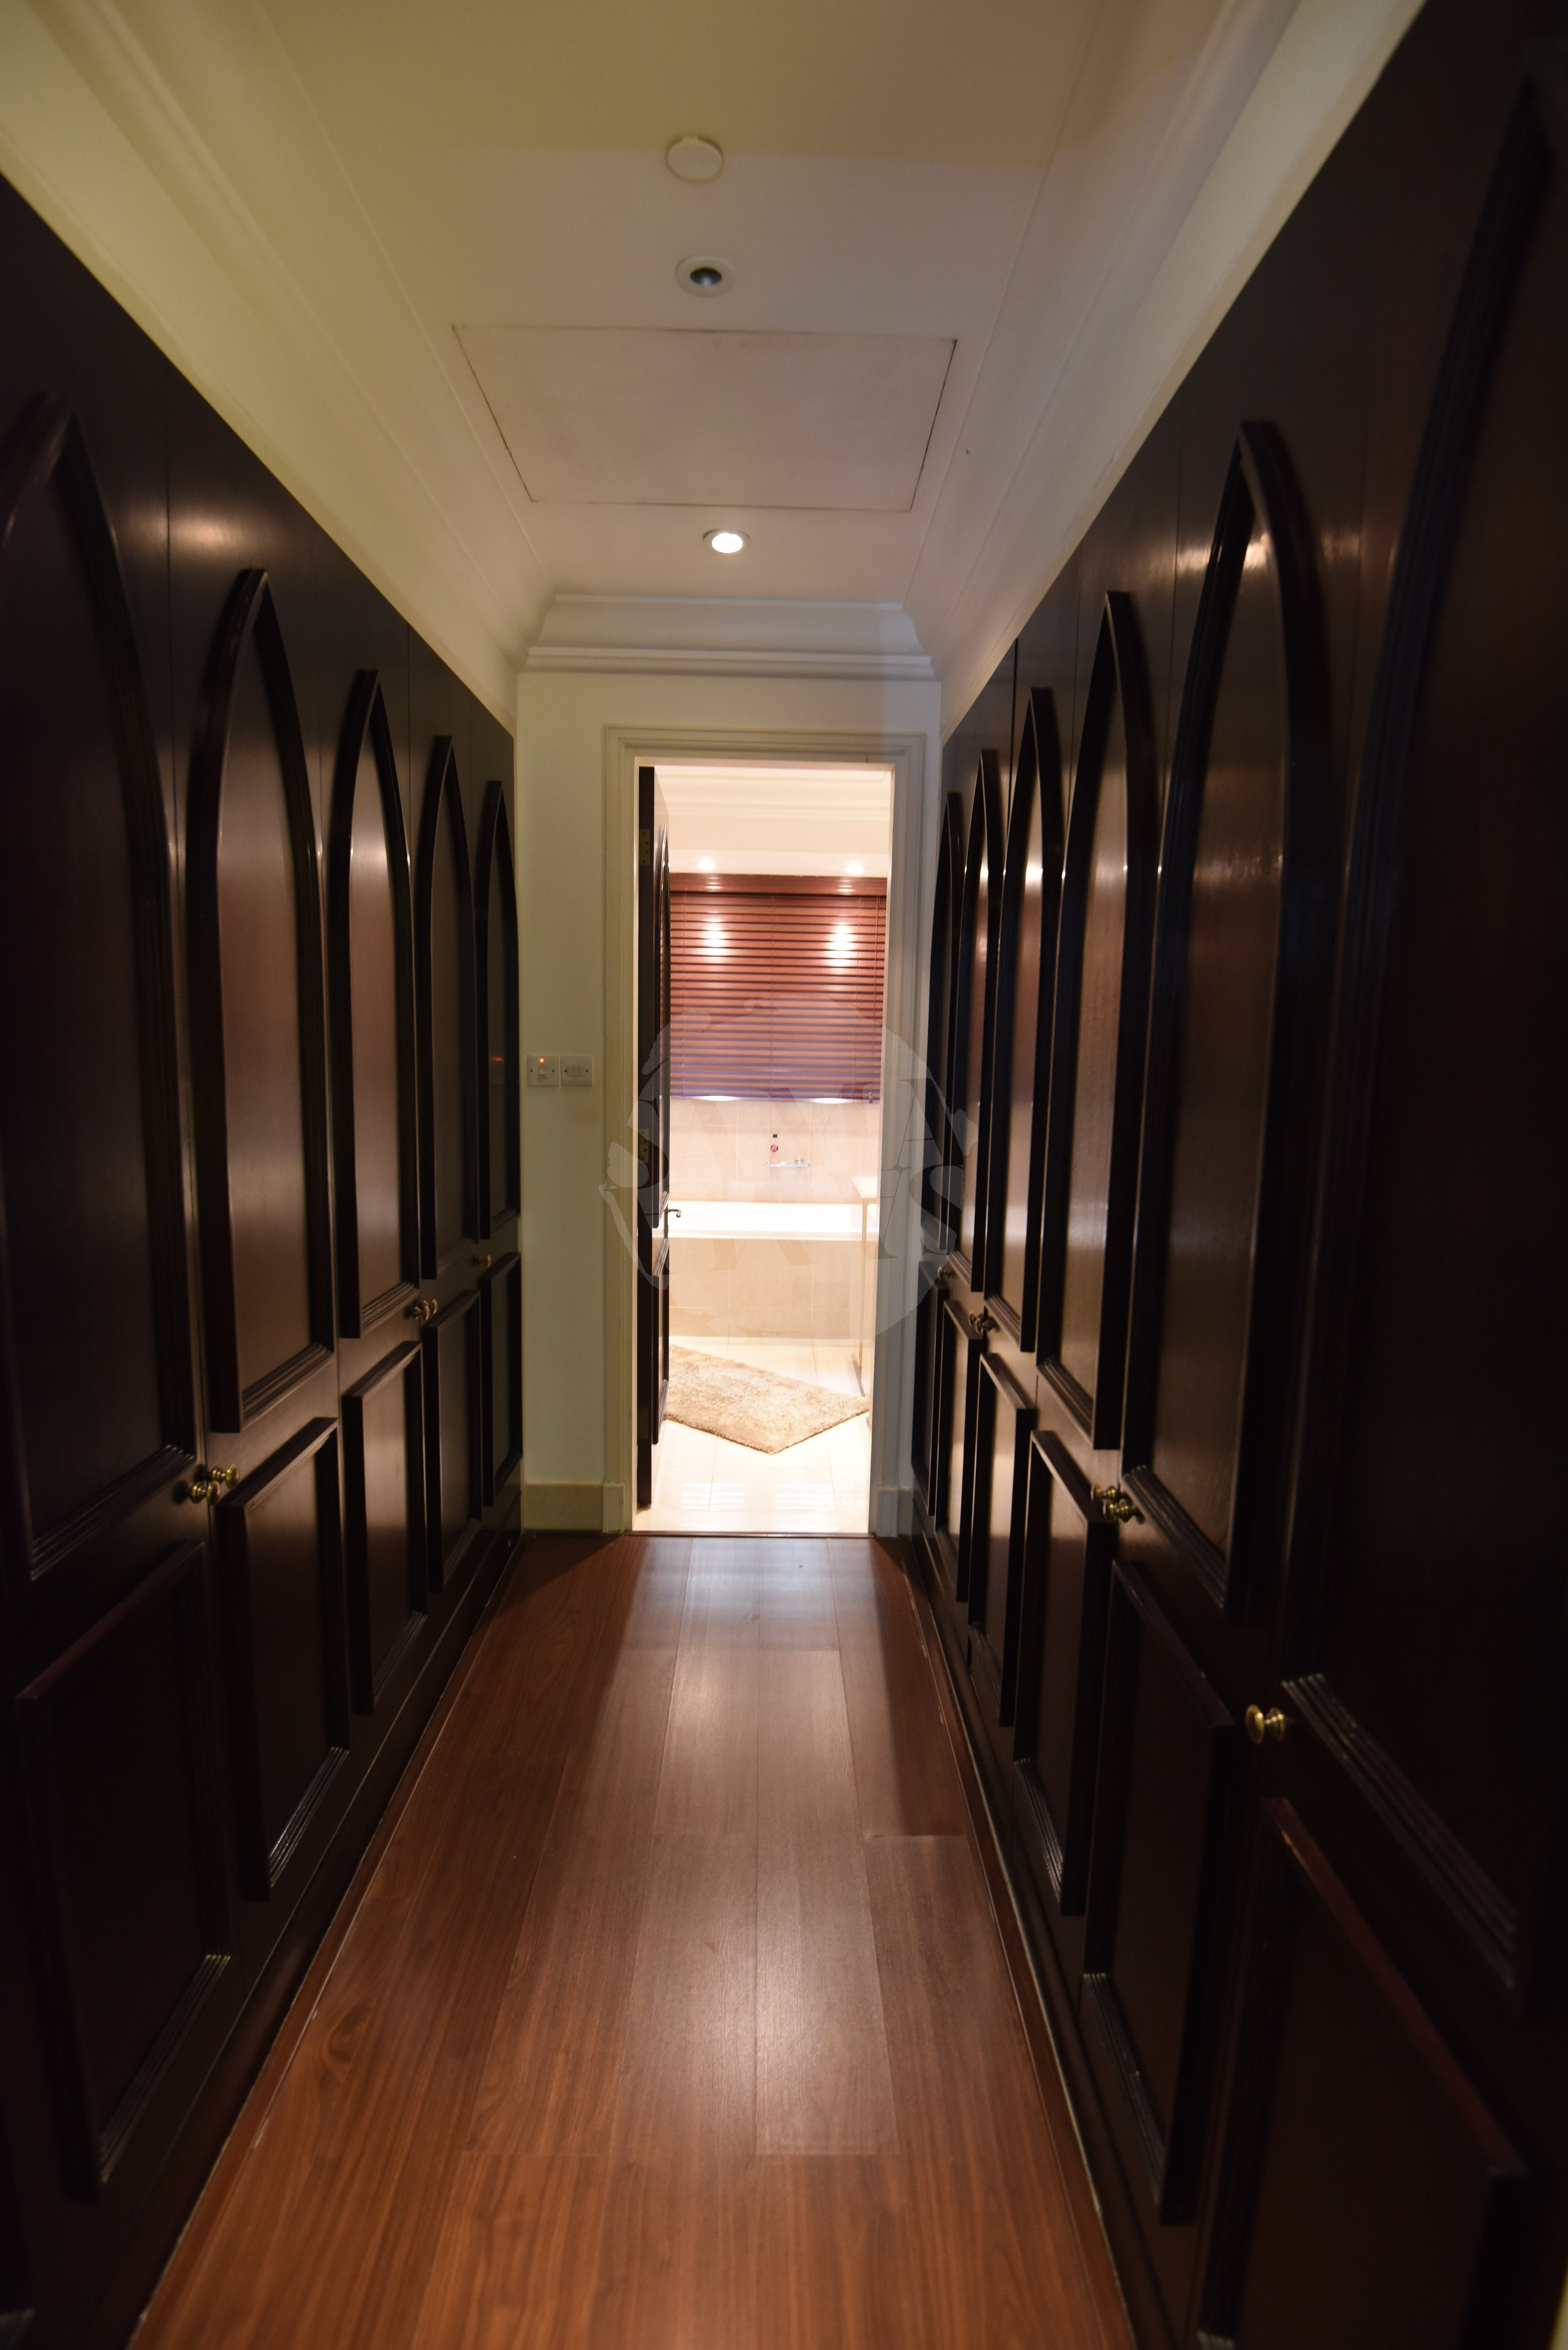 The bedroom leads onto a huge walk-in closet with ample storage space for all your things